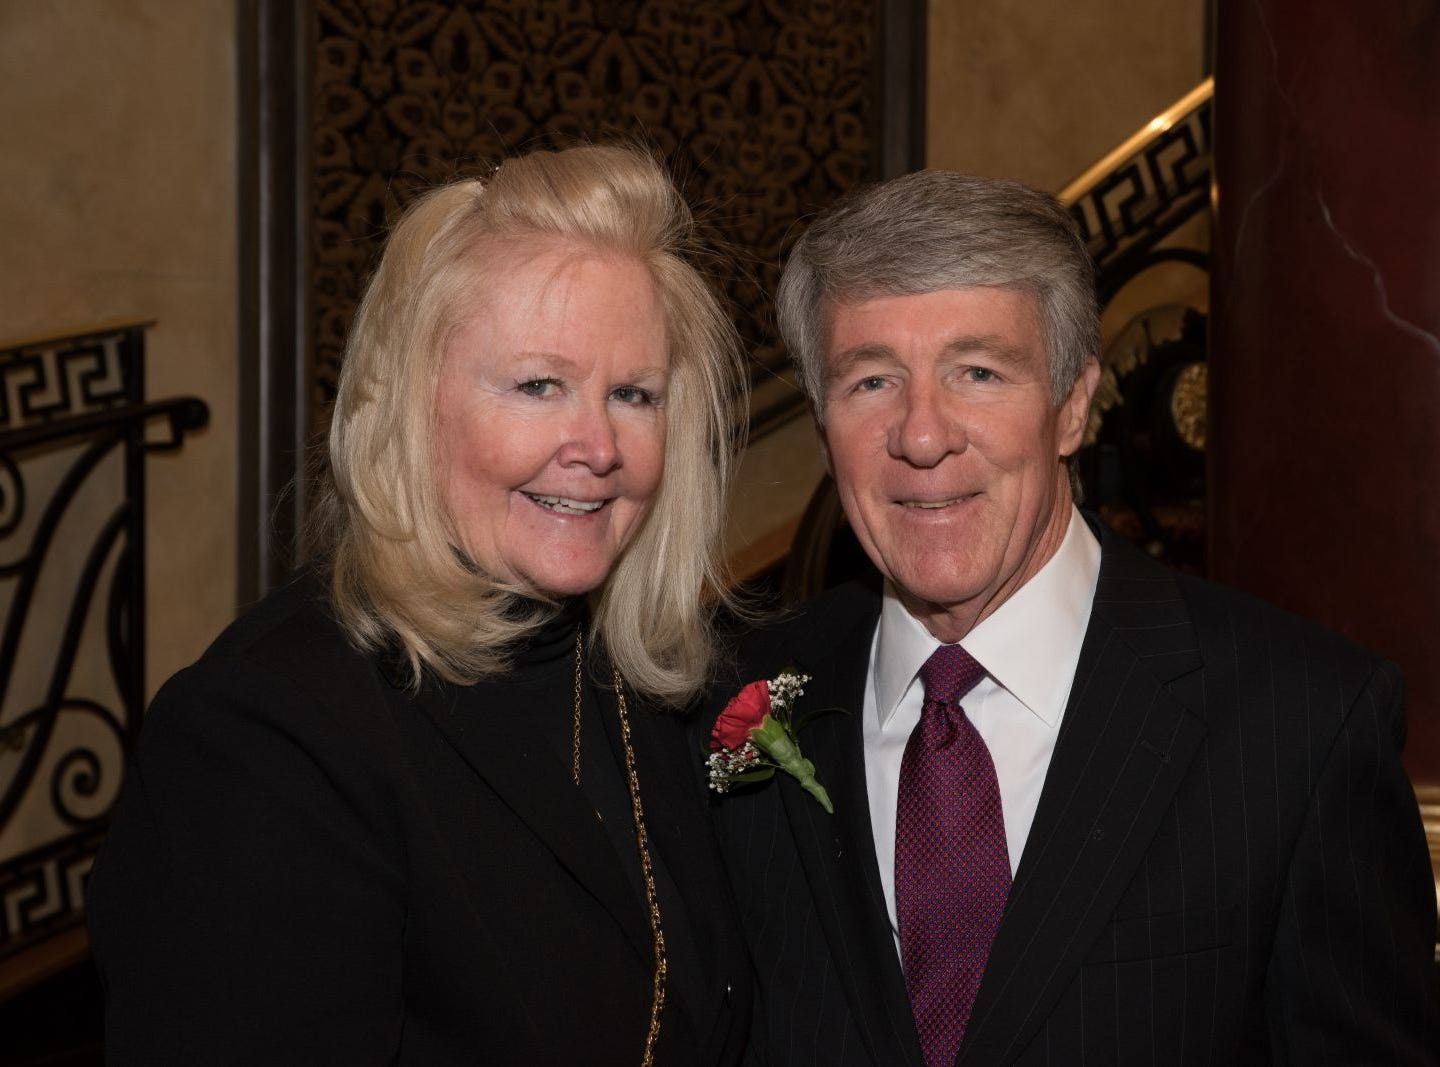 Patti and Joe (honoree) Donlan. Bergen Catholic High School celebrates their 2018 Crusader Gala at The Venetian in Garfield. 11/16/2018